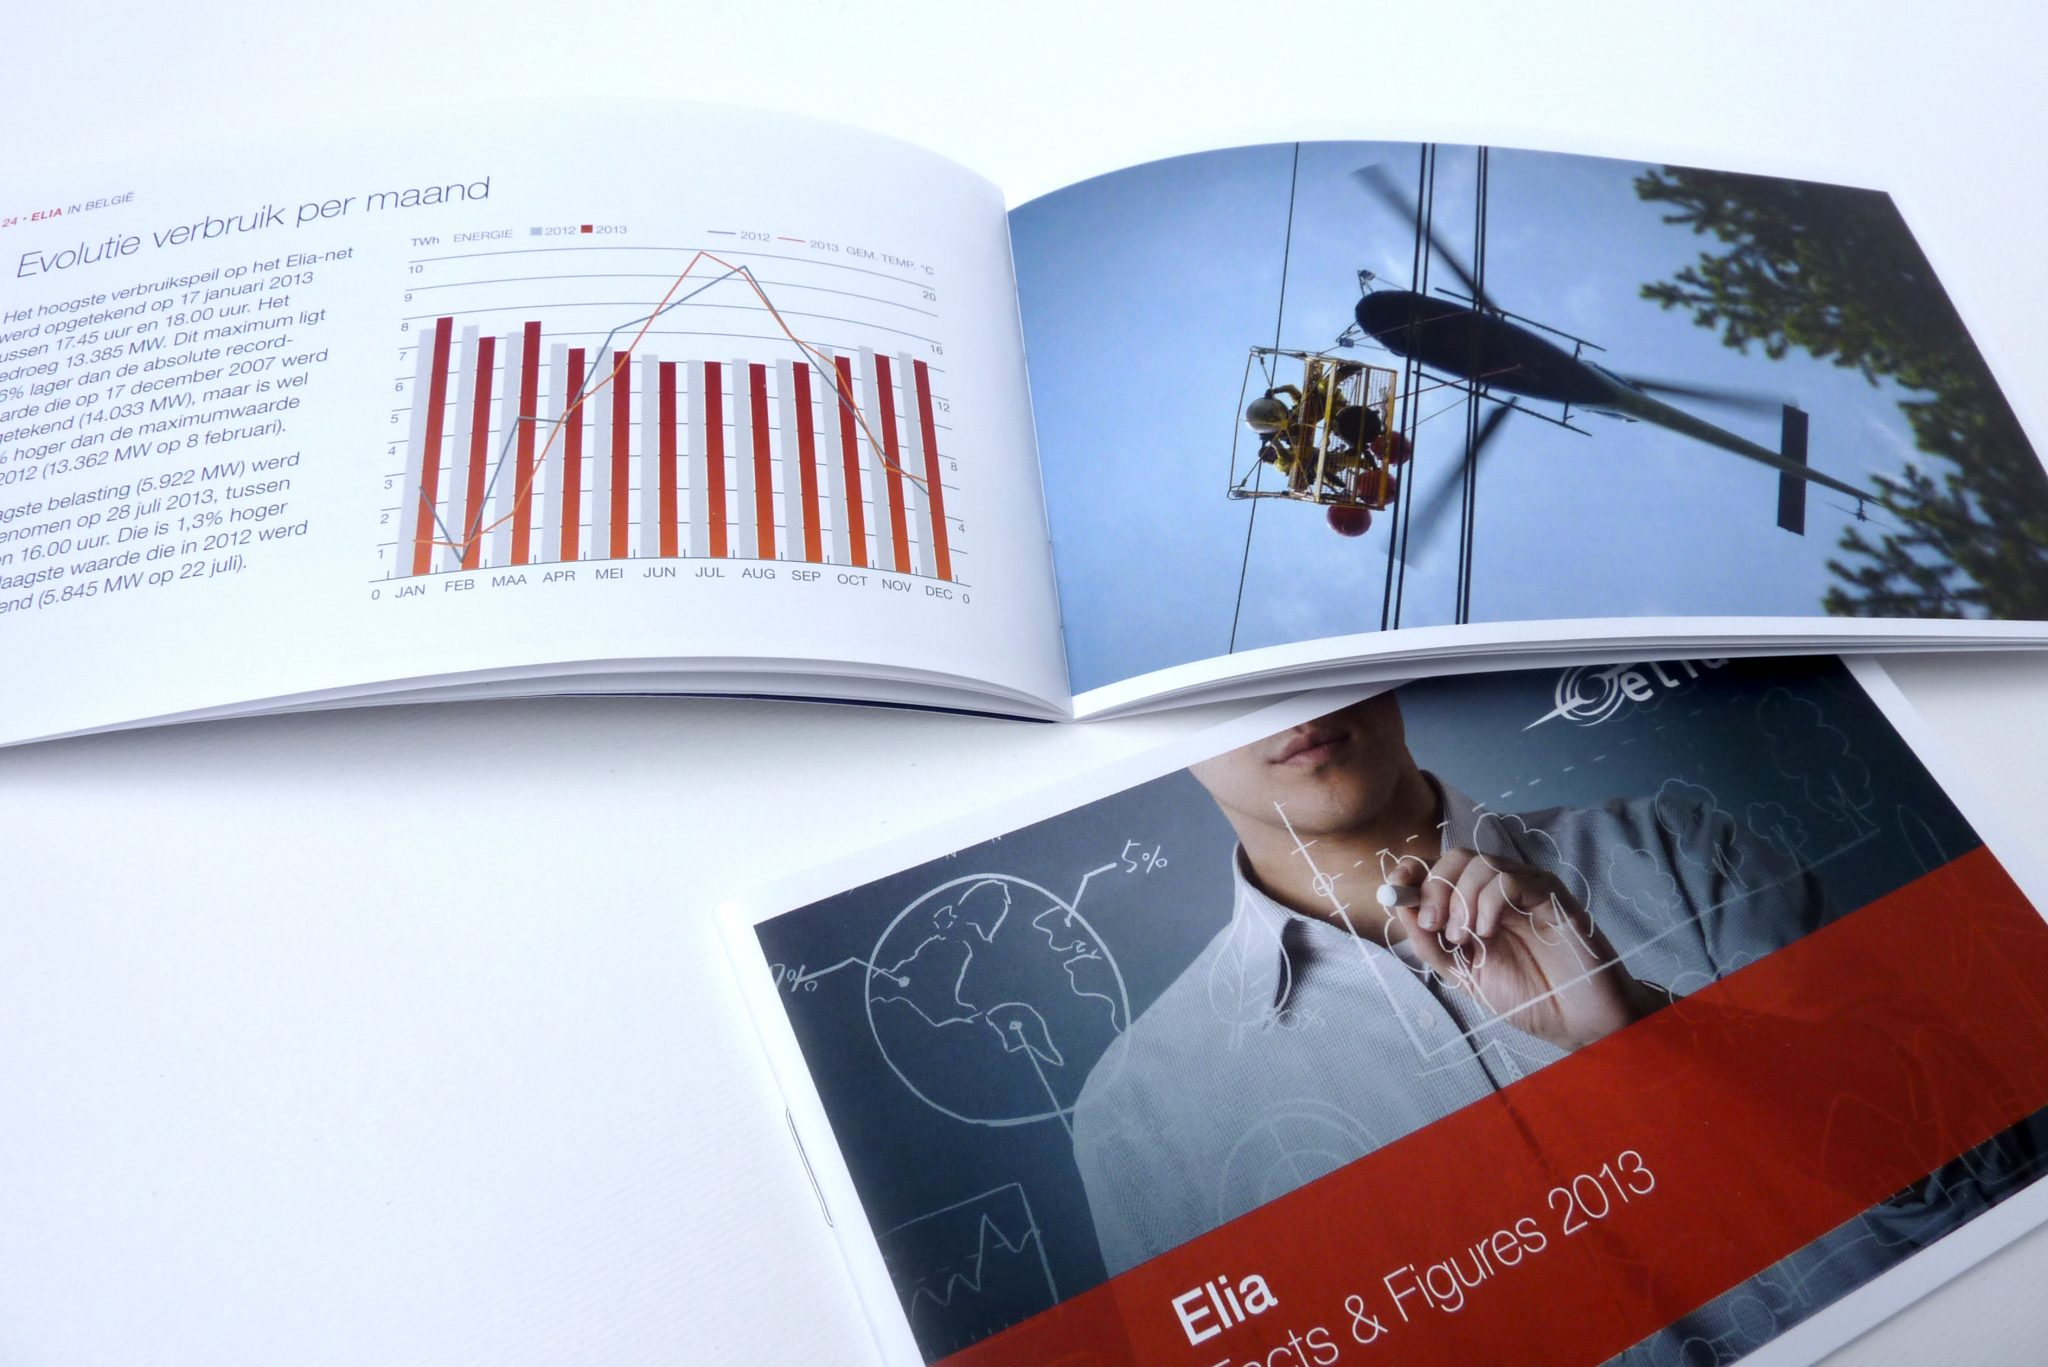 studio witvrouwen layout data design design graphic color visual identity elia